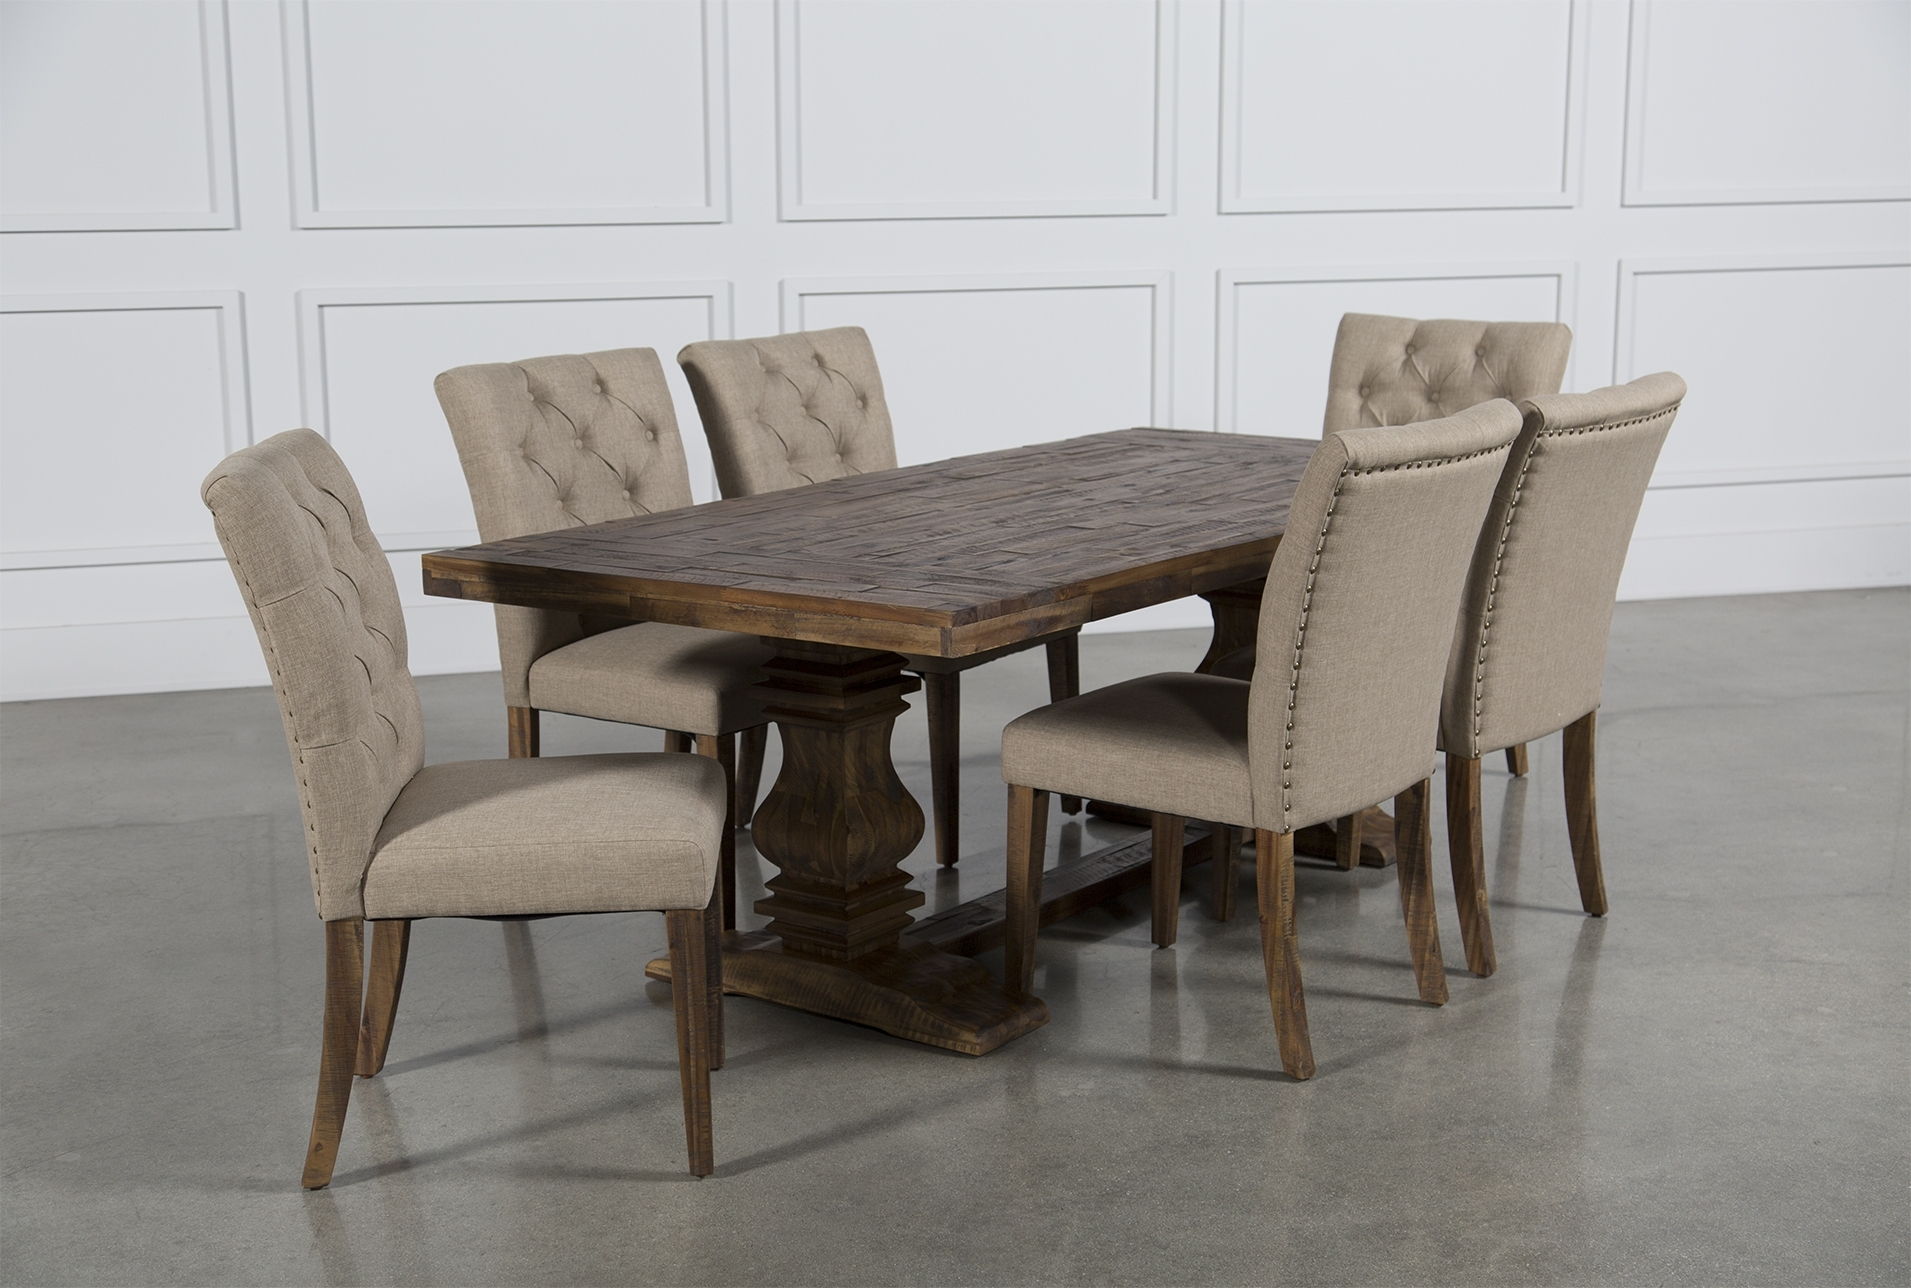 Partridge 7 Piece Dining Set | Products | Pinterest | Partridge And Inside Most Current Partridge 6 Piece Dining Sets (Image 12 of 20)